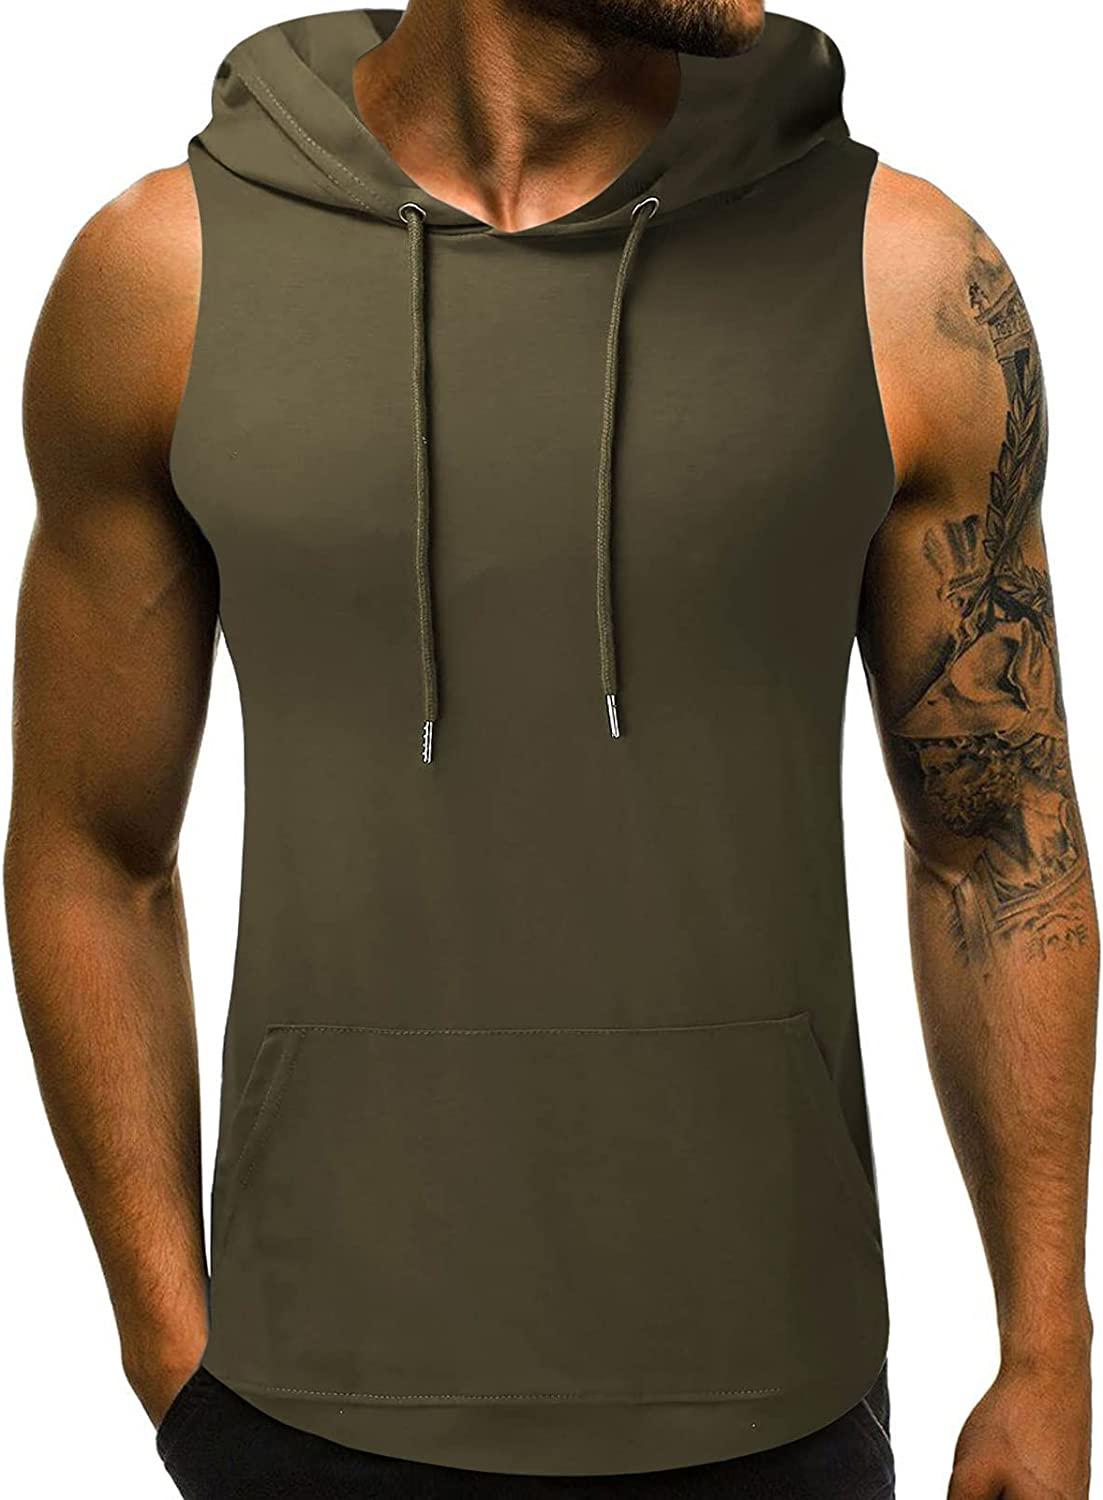 Fanteecy Mens Max 73% OFF Tank Top with Hood Wholesale Pocket Gym Sleev Hoodie Workout